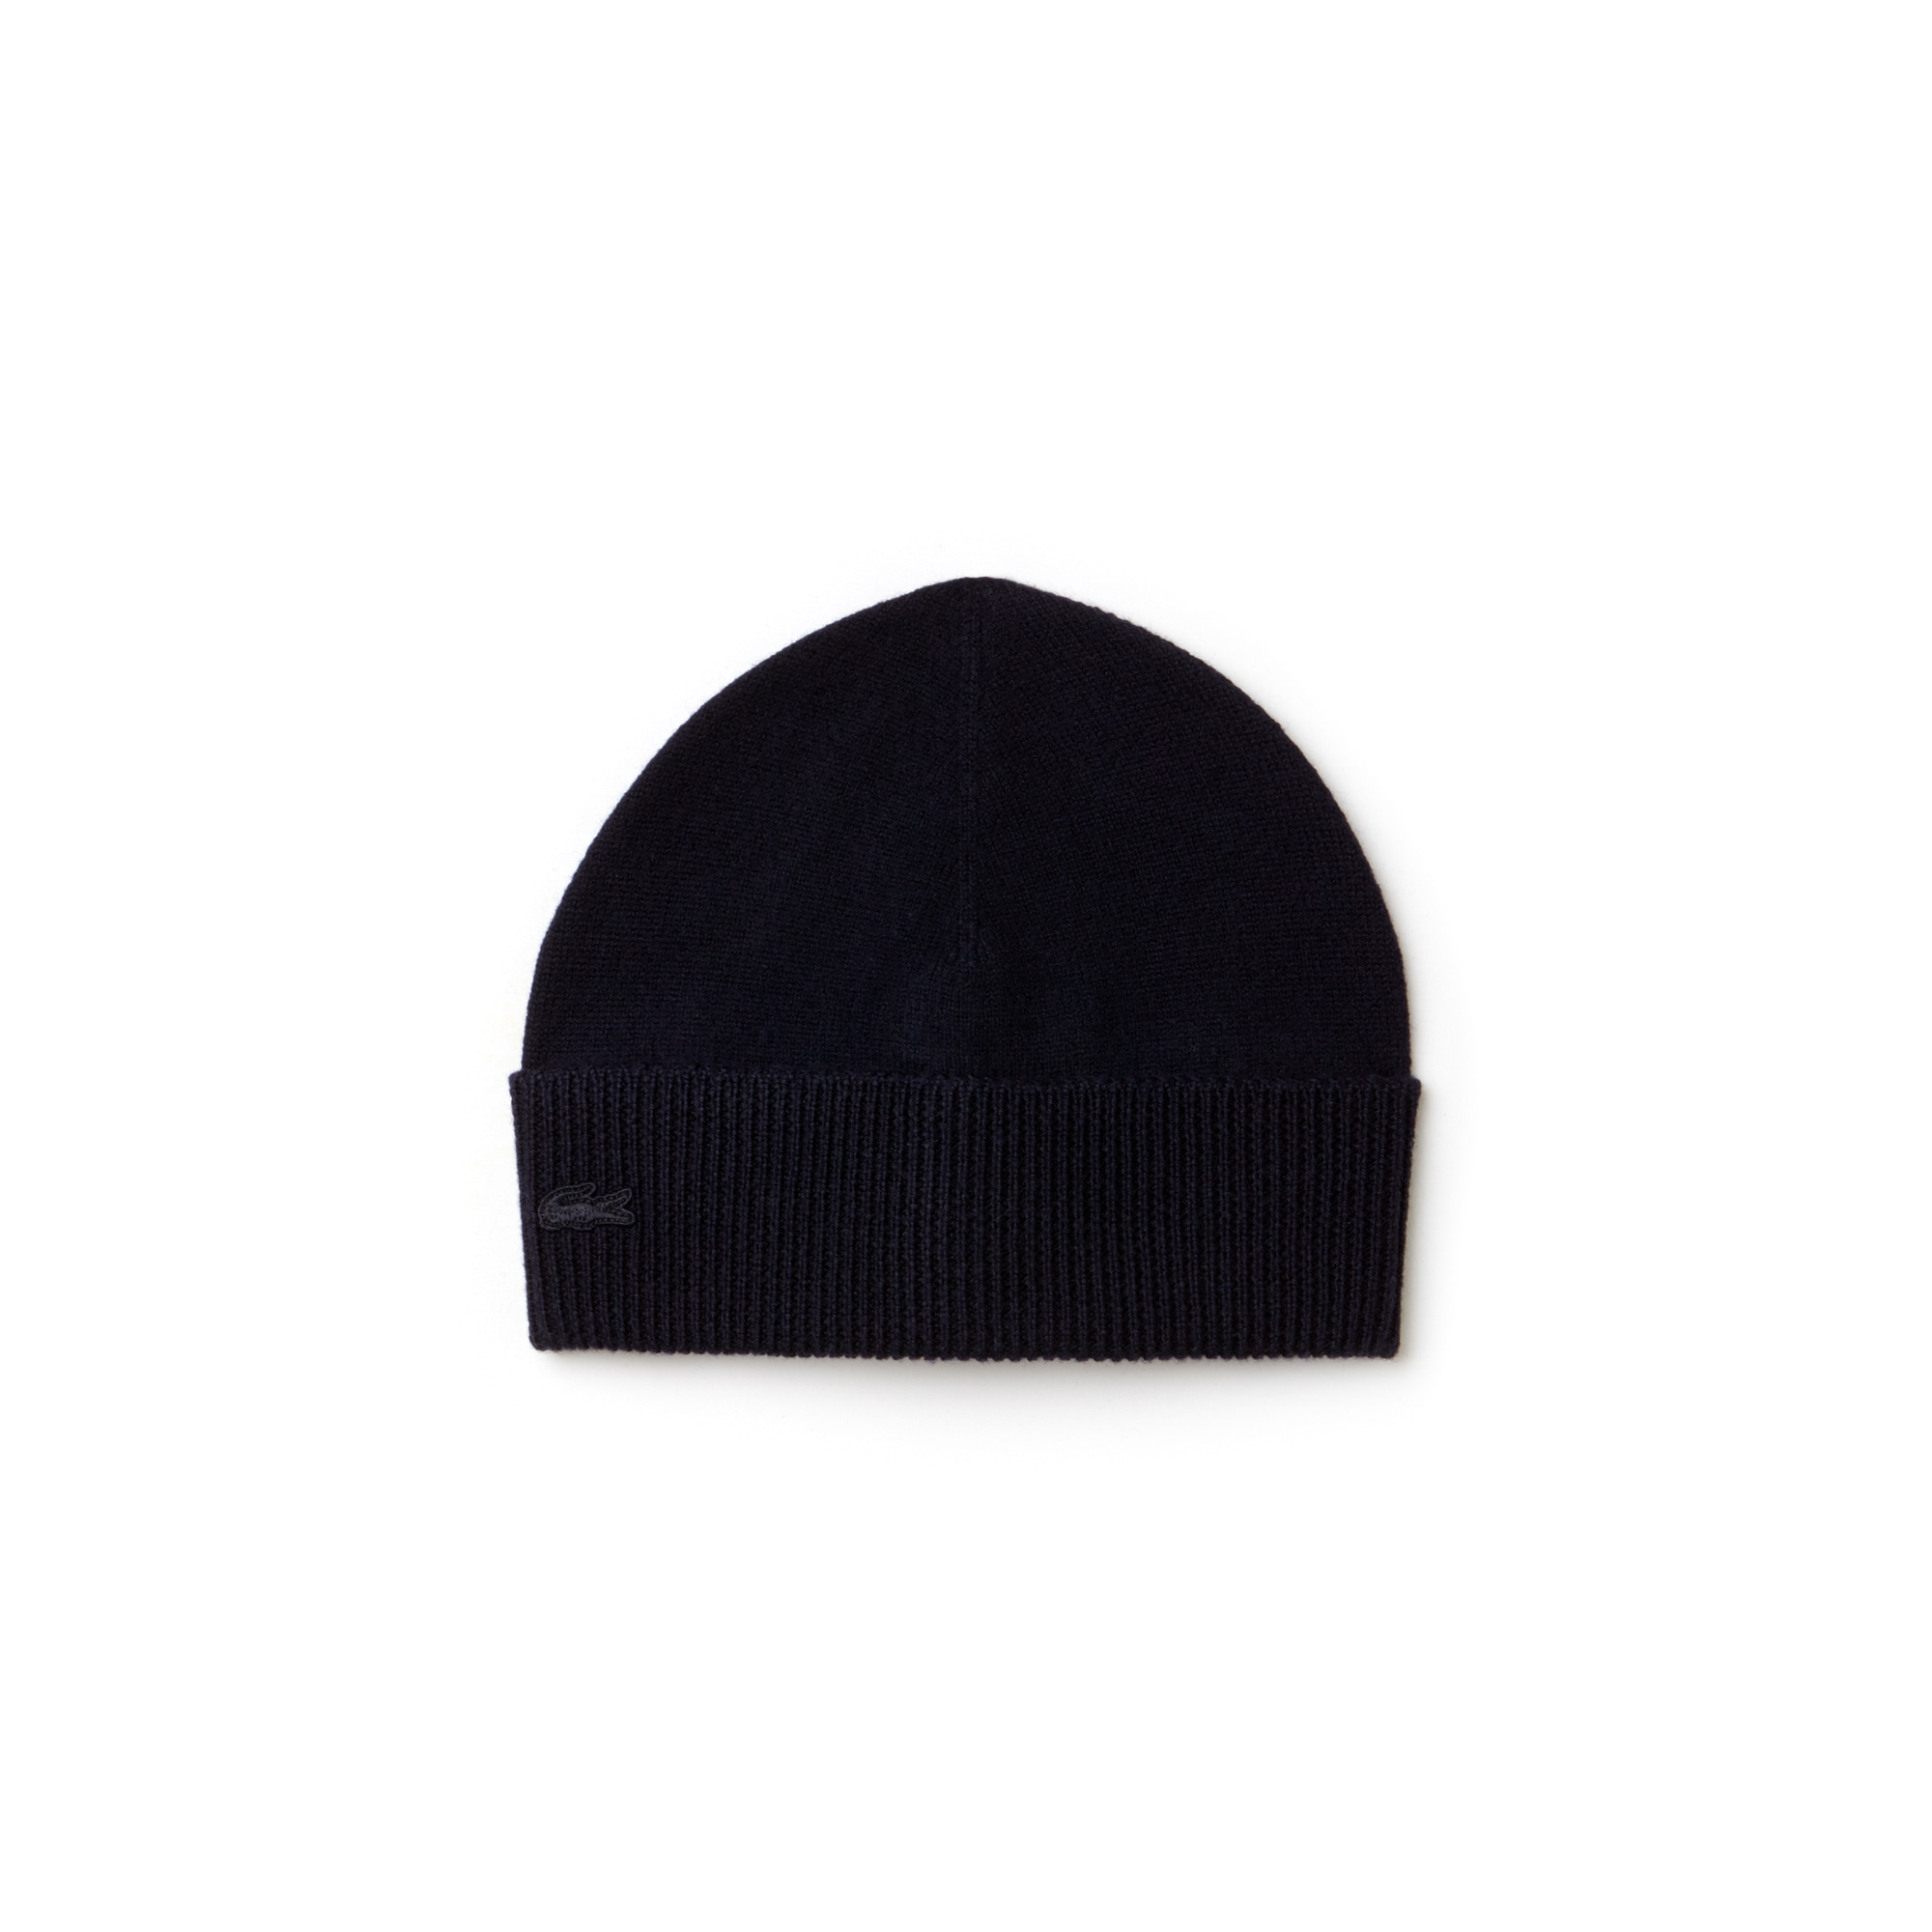 Men's Ribbed Turned Edge Wool Jersey Beanie